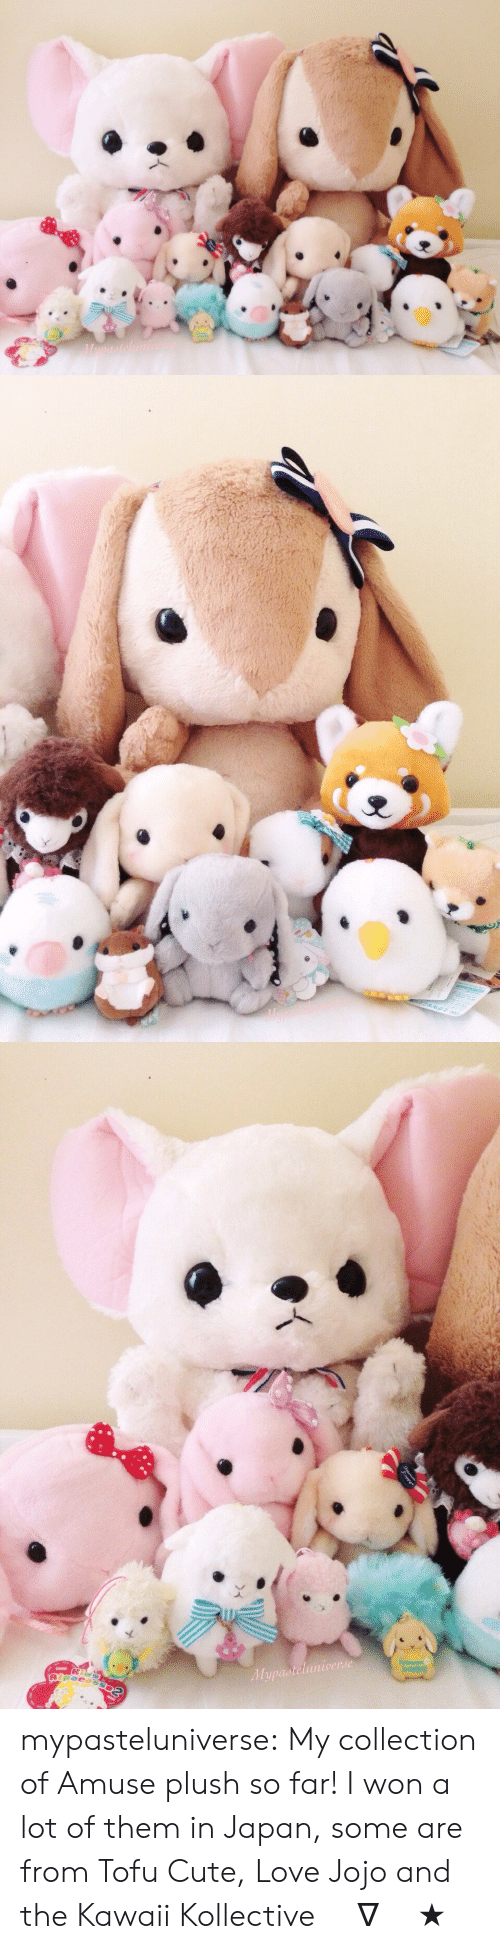 tofu: Mupasteluniverde mypasteluniverse:  My collection of Amuse plush so far! I won a lot of them in Japan, some are from Tofu Cute, Love Jojo and the Kawaii Kollective (^∇^)★彡